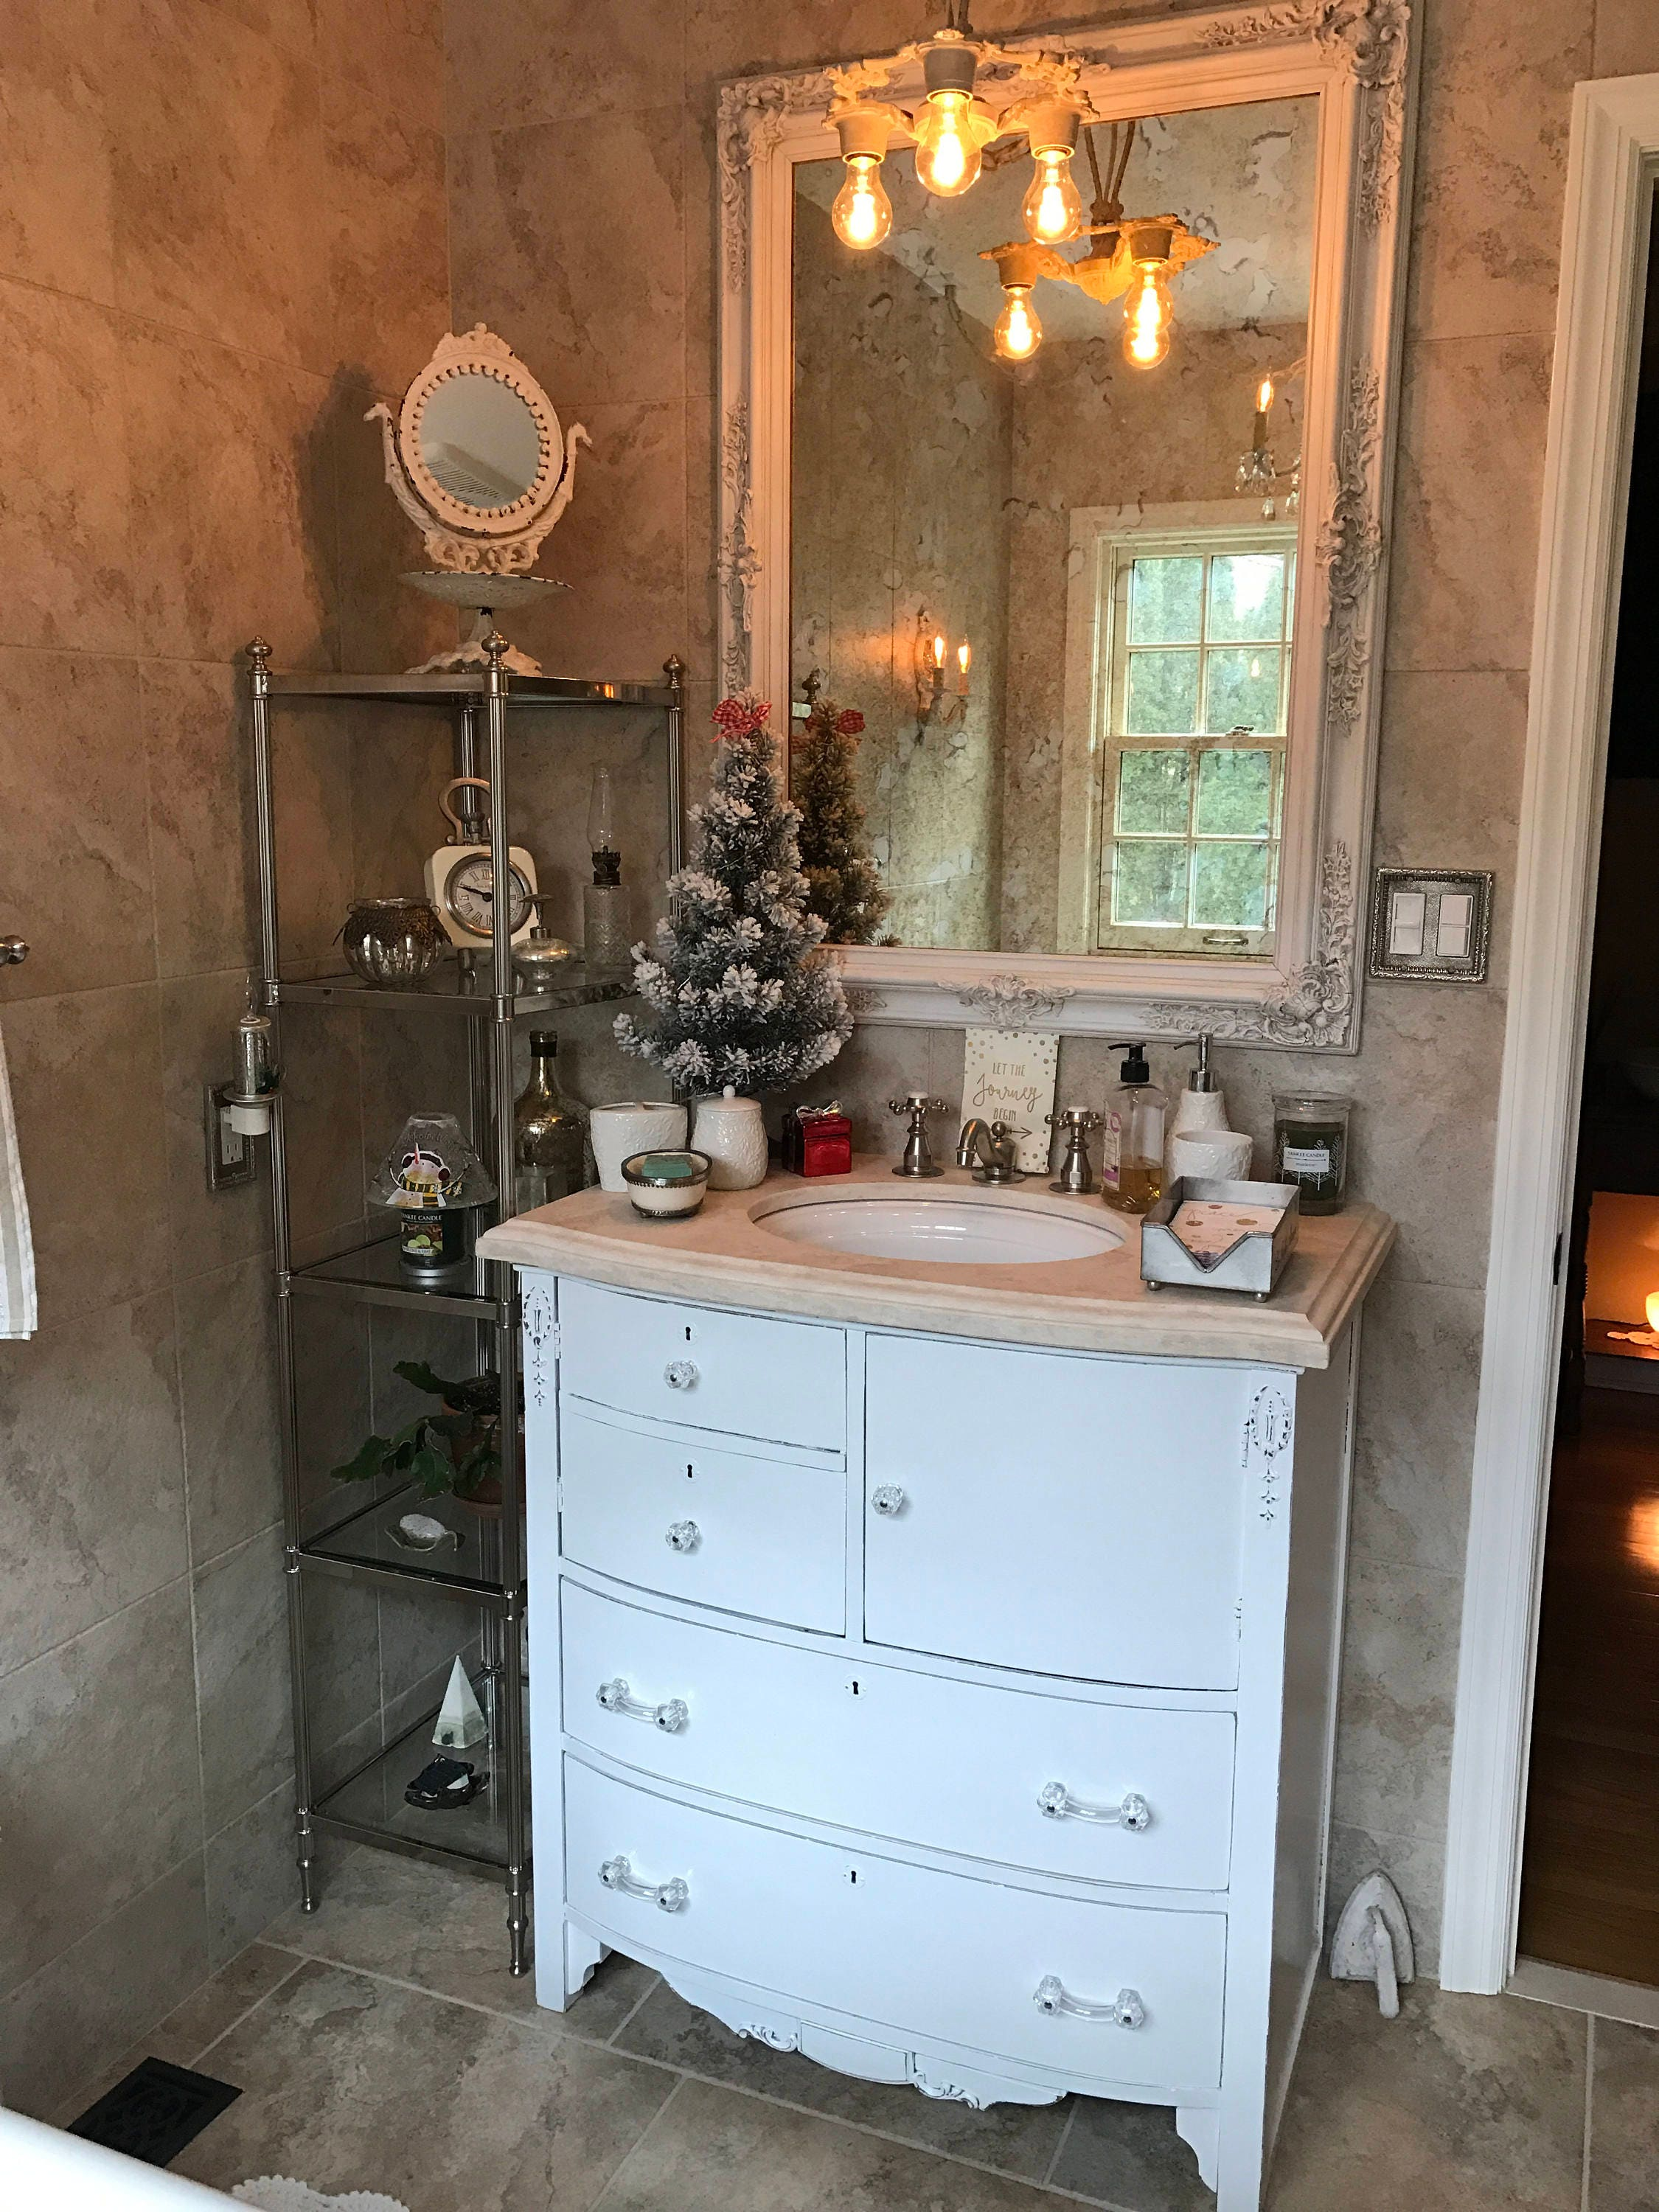 the for makeup magnificent bathroom vanity dresser to design sink energize remodel bedroom unique house